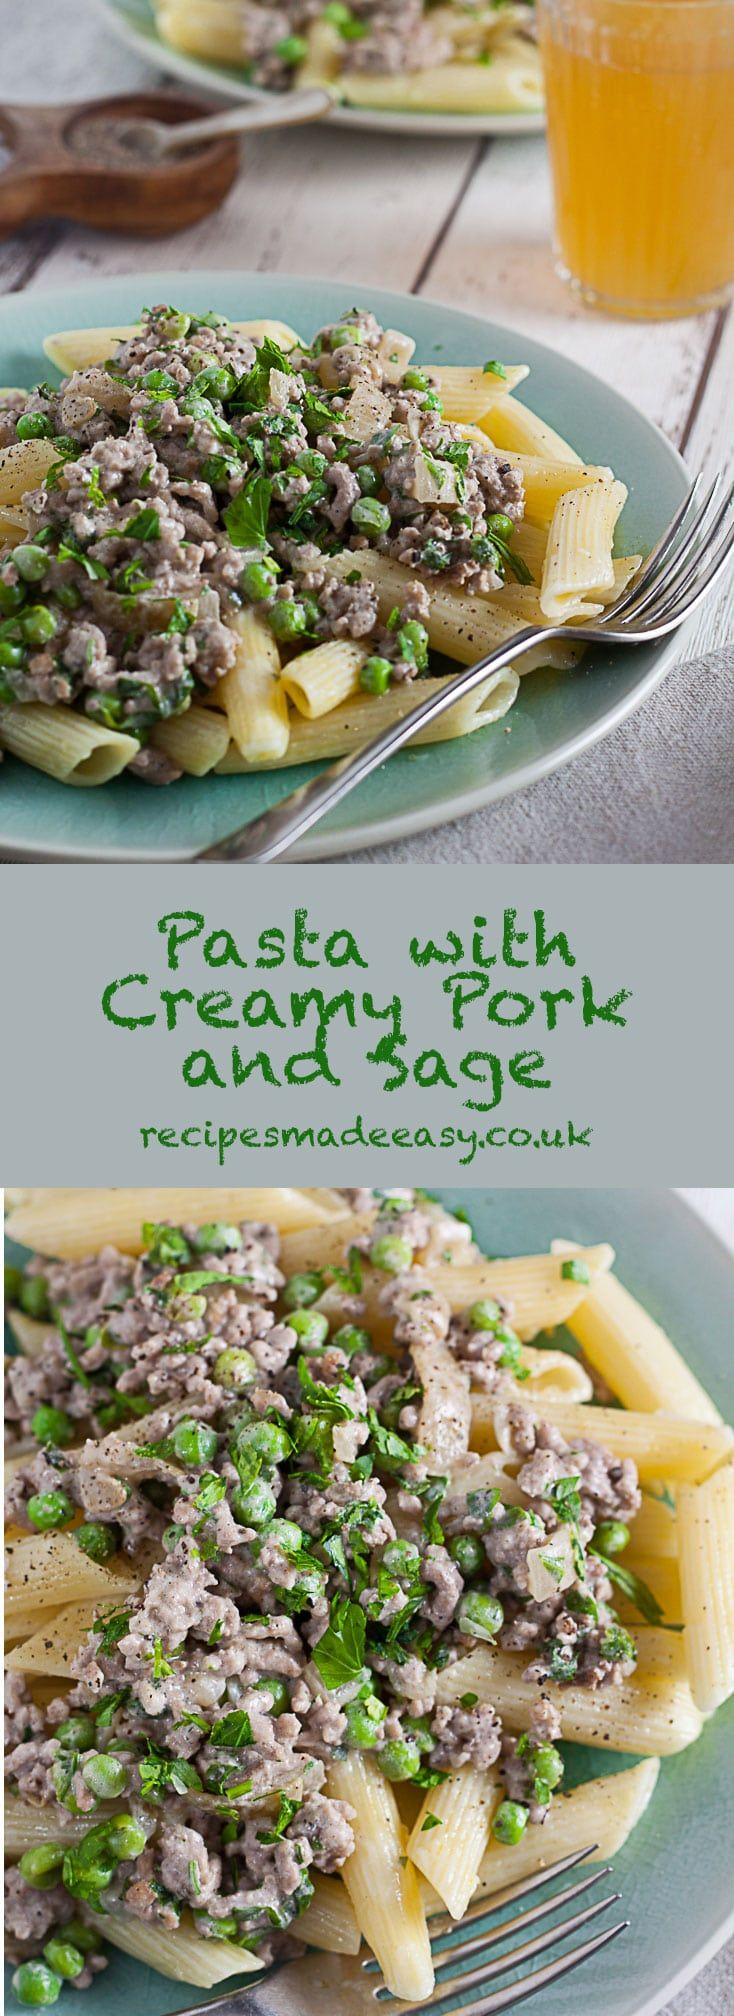 Pasta with Creamy Pork and Sage makes a delicious and quick meal that can be on the table in under 20 minutes.  #pasta #midweekmeal #familyfavourite #easyrecipe #pastasupper via @jacdotbee